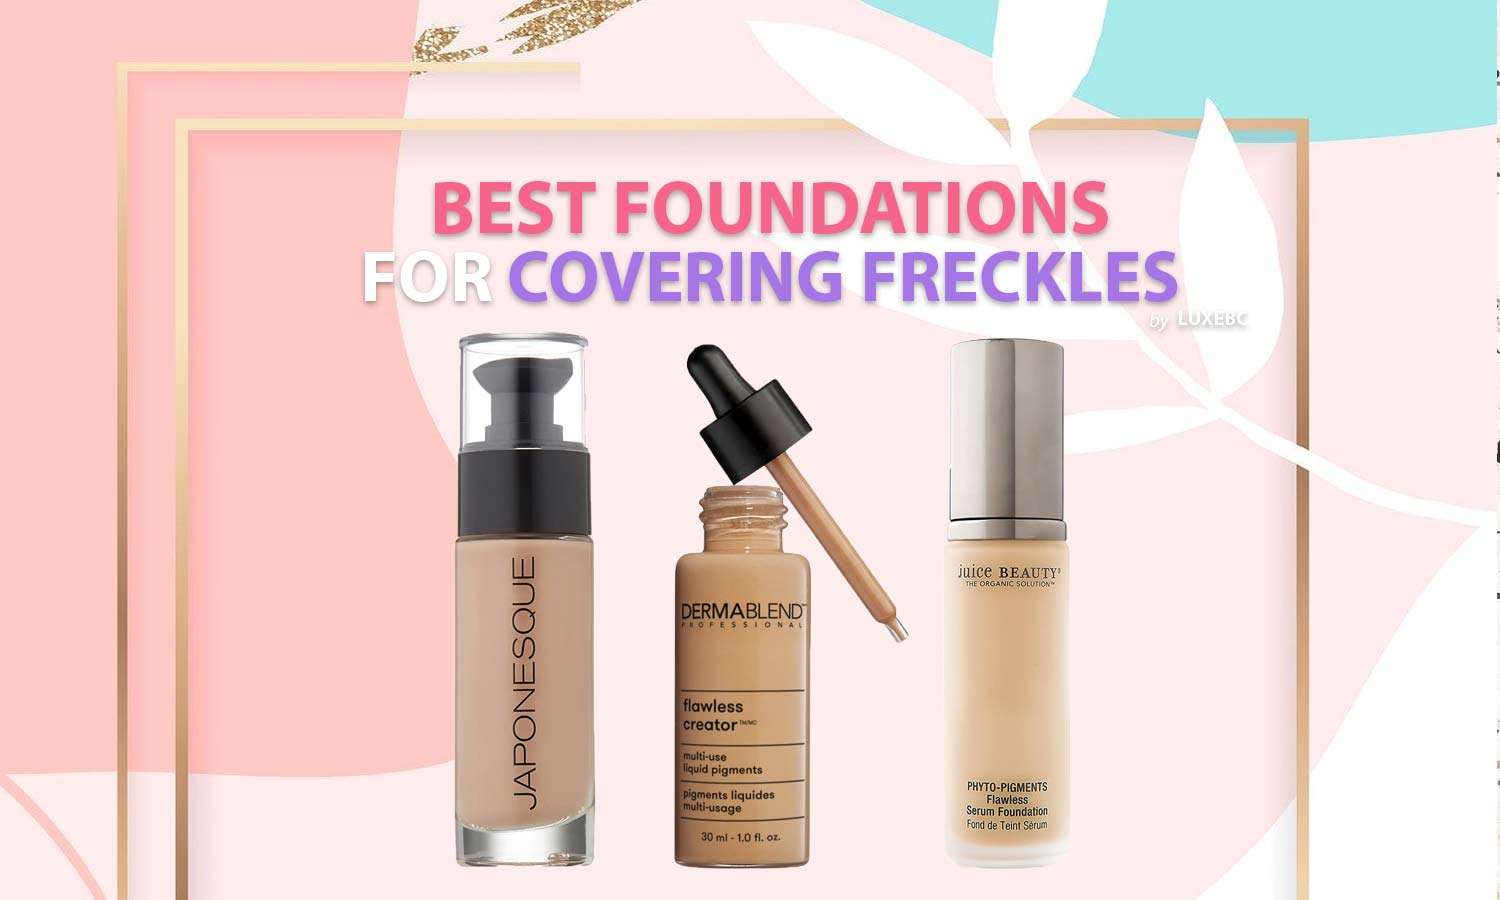 Best foundations for covering freckles